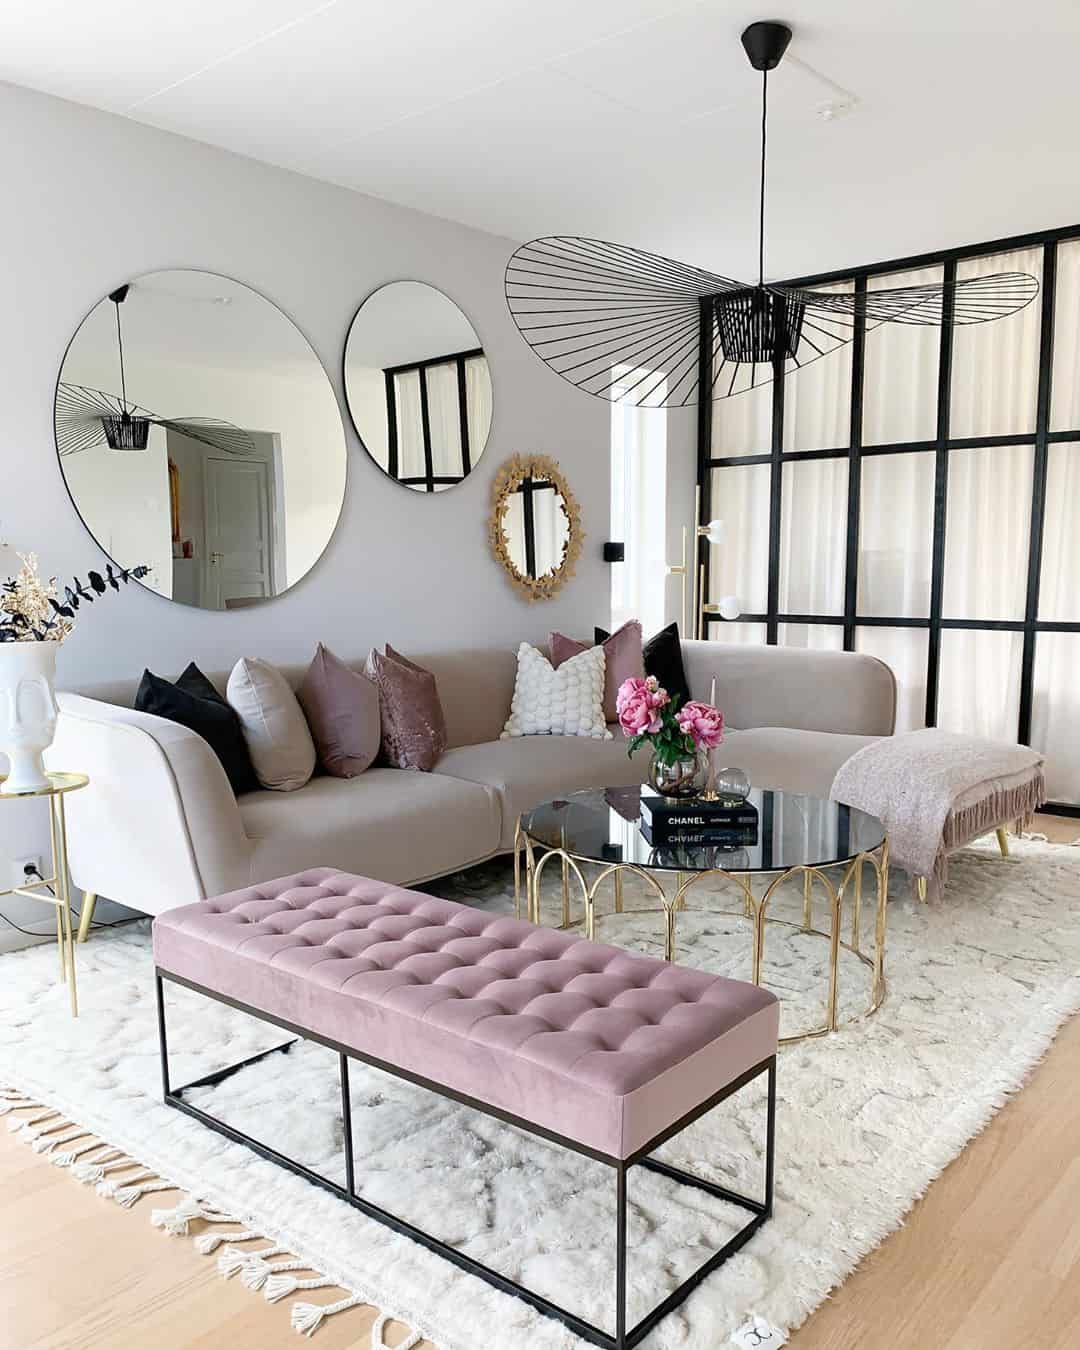 Top 4 Stylish Trends and Ideas For Living Room 2020 (40 ... on Trendy Room  id=99744